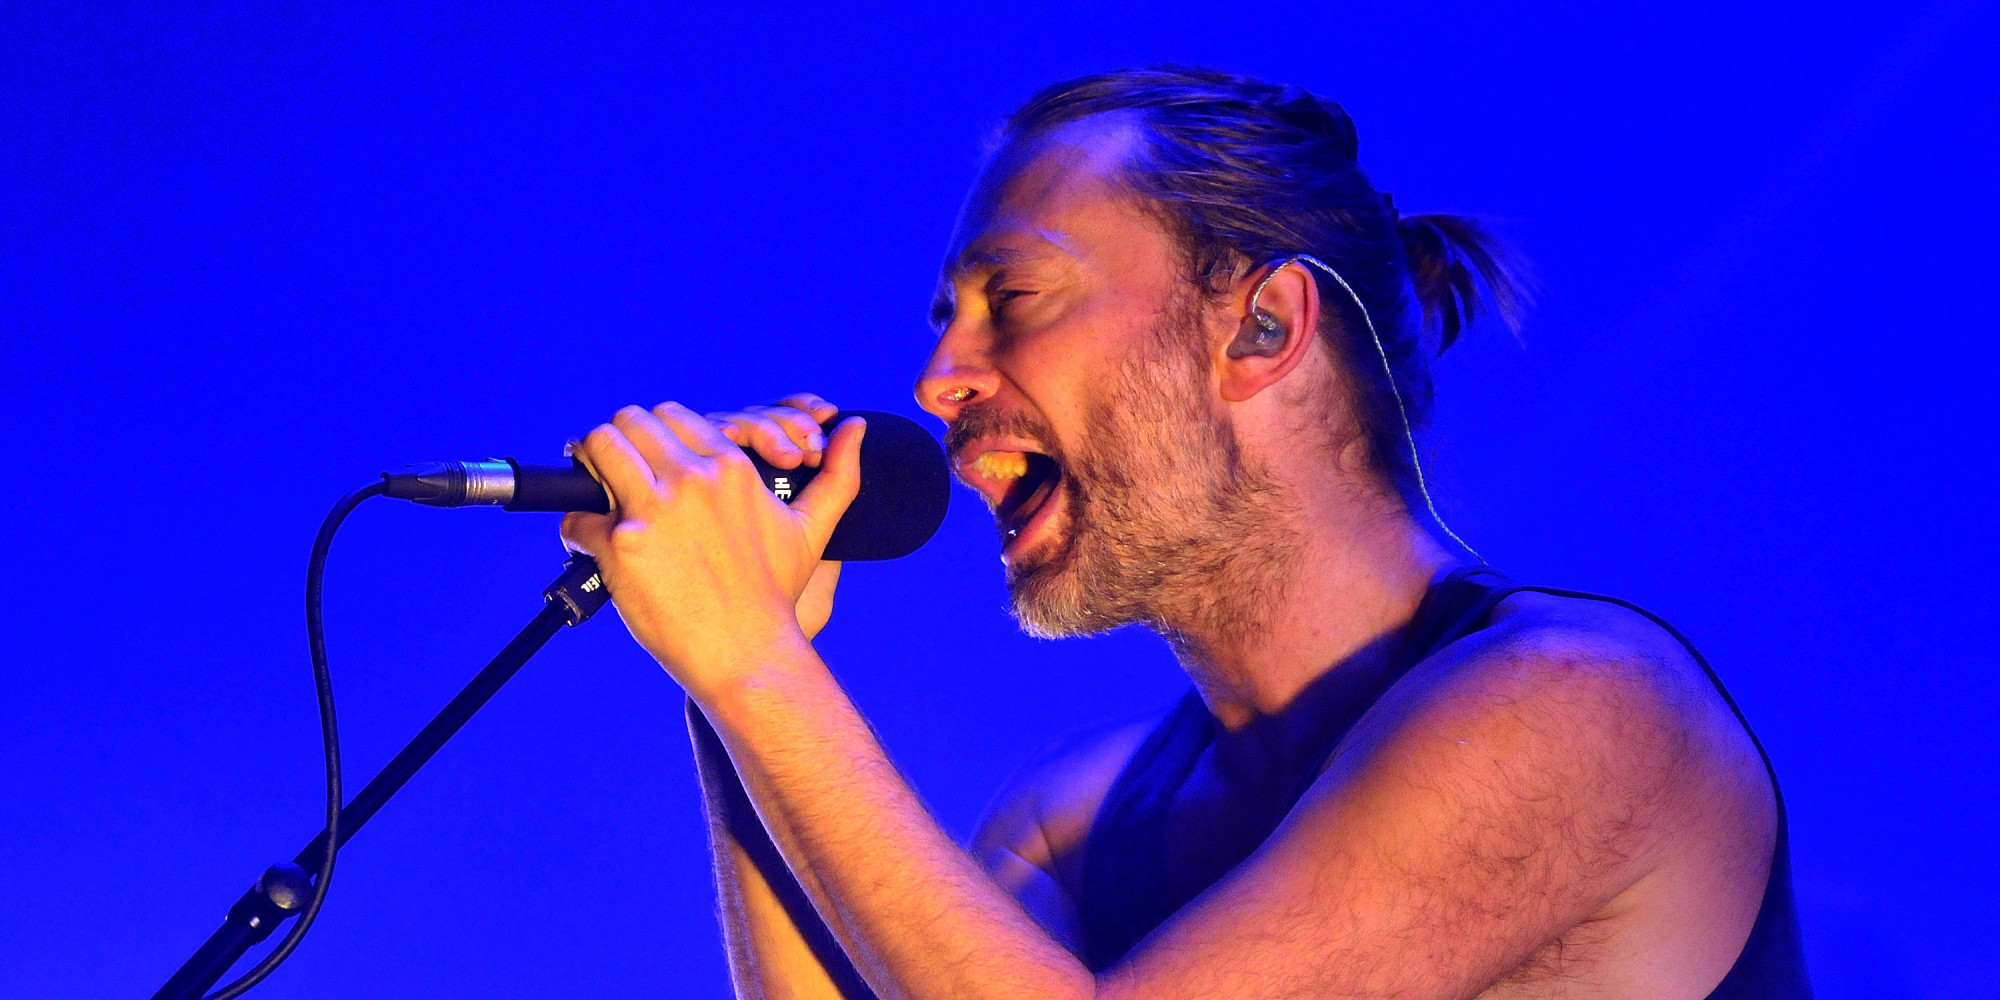 Radiohead's Thom Yorke has just released a new album on BitTorrent